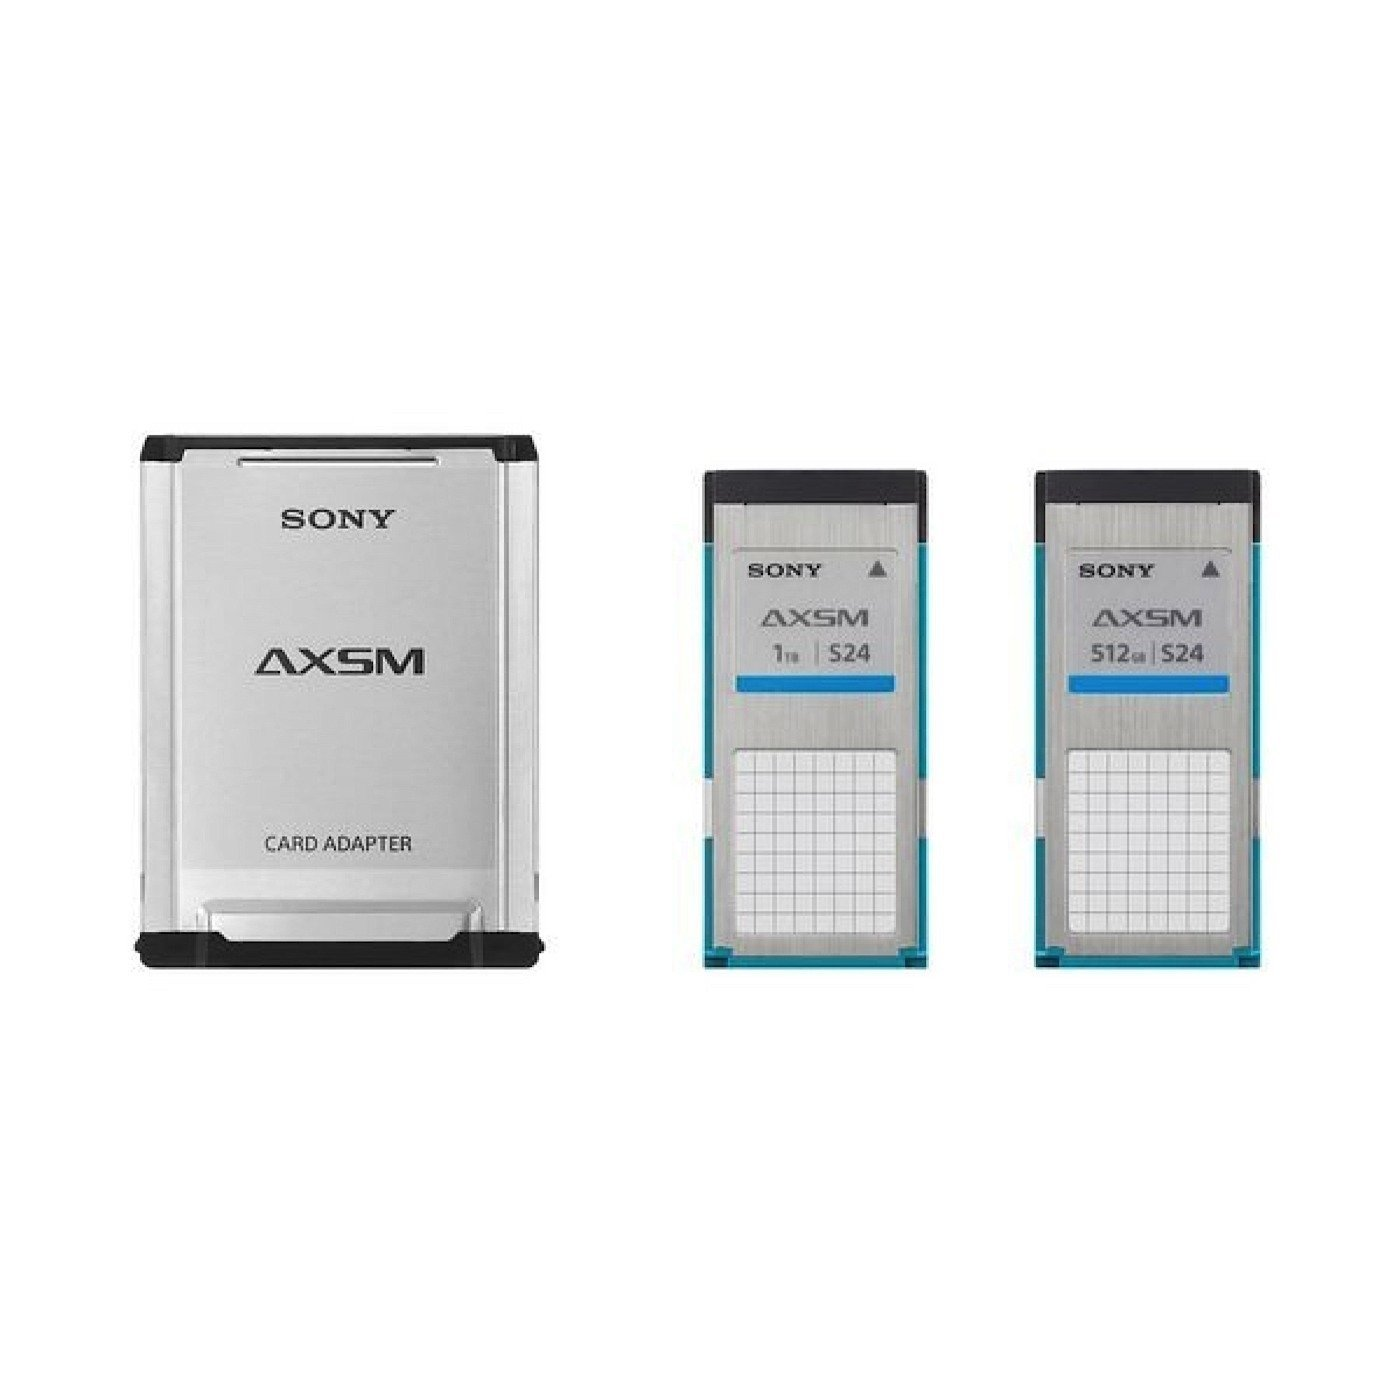 2 - Sony AXSM 512 GB Memory Cards w/USB 3.0 Card Reader Package